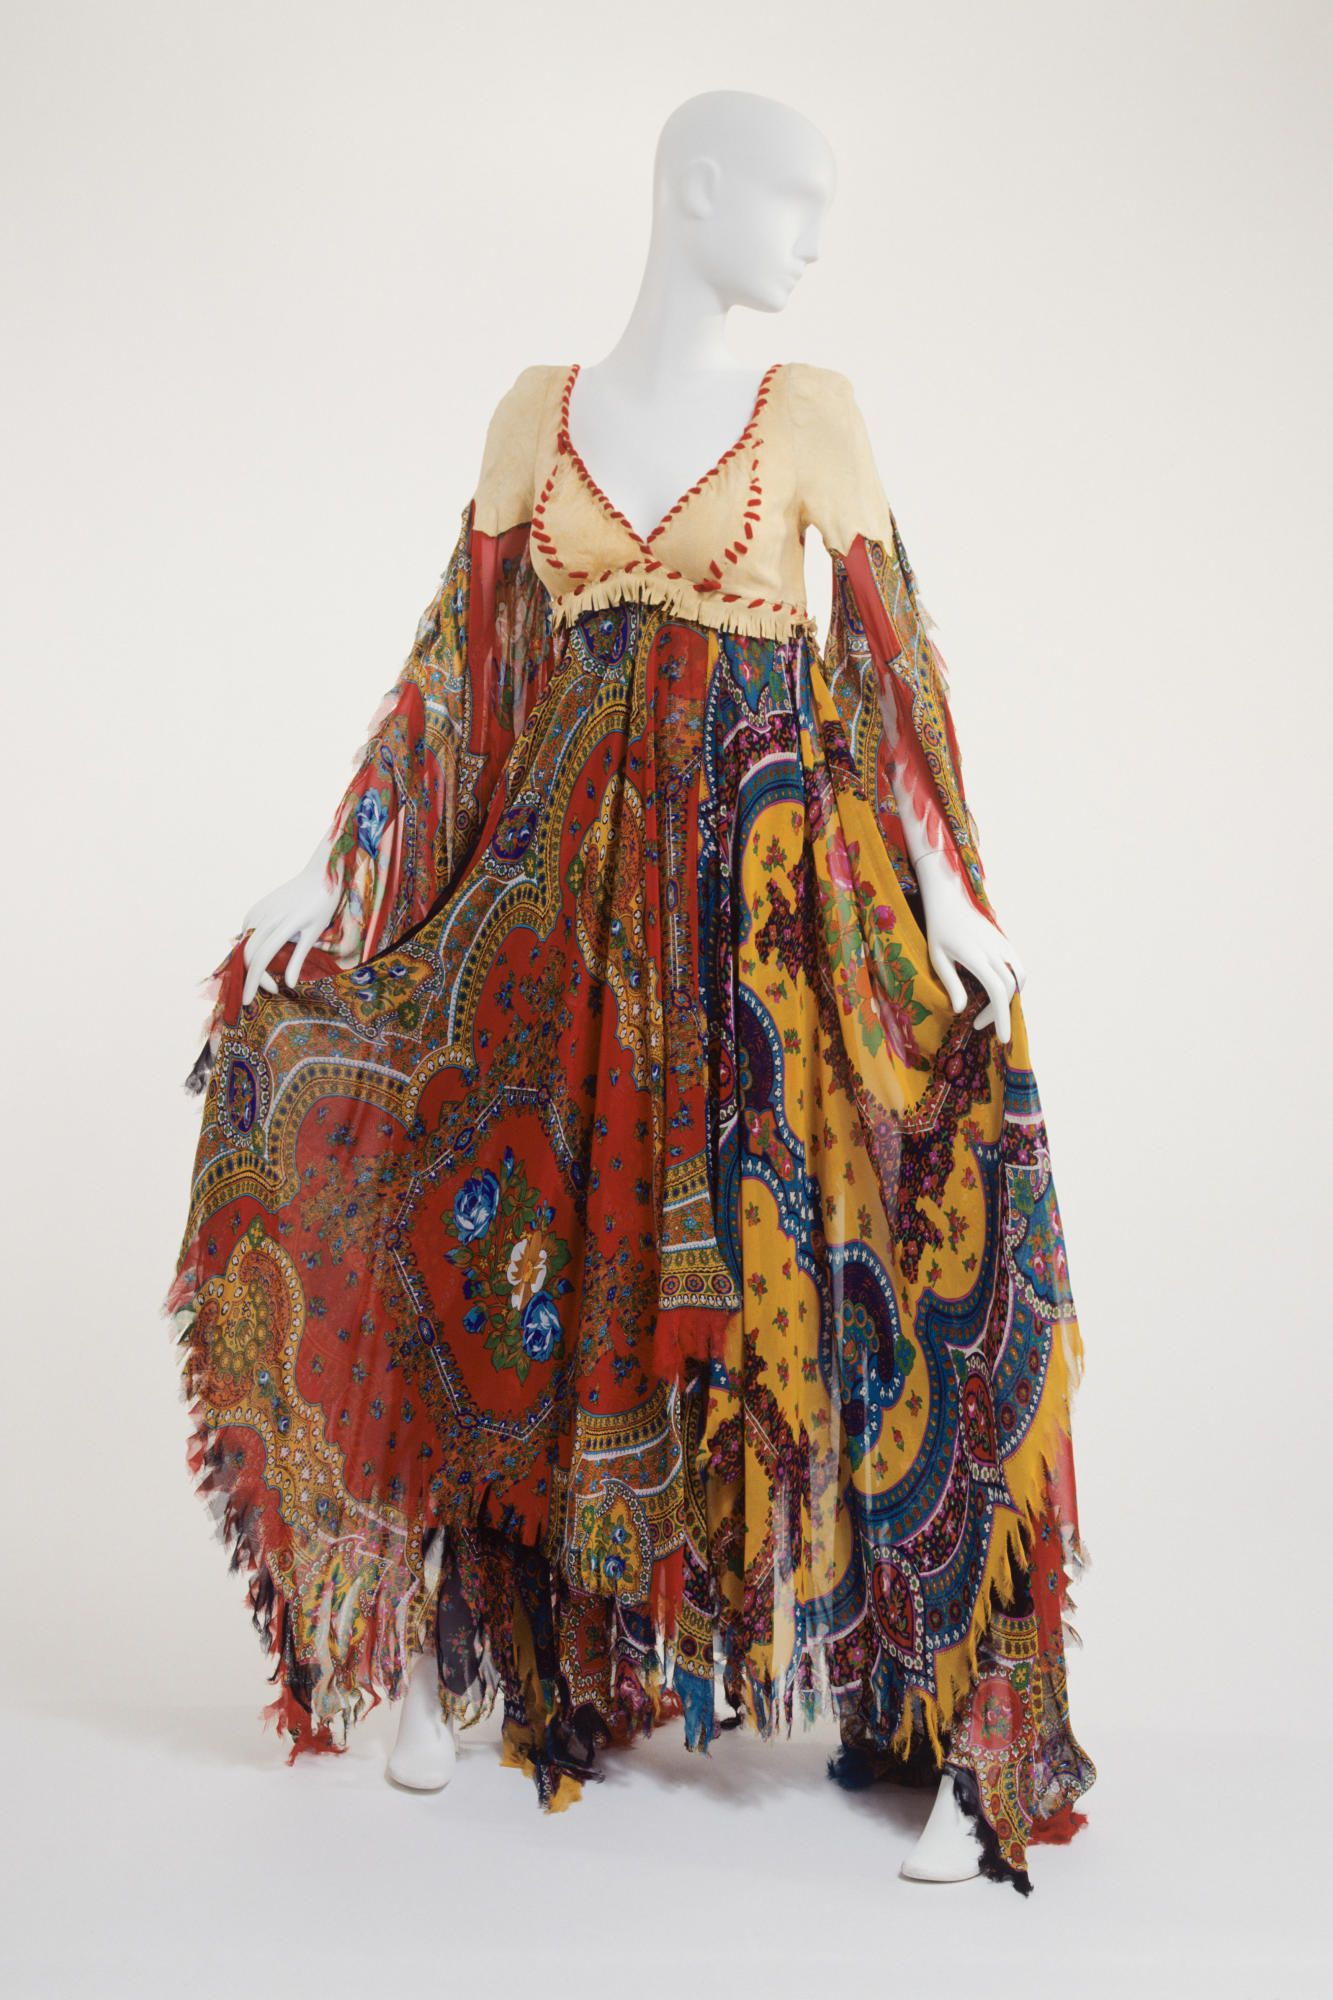 """""""Cinderella"""": Giorgio di Sant'Angelo Dress, The Summer of Jane and Cinderella collection, 1971. Photo: The Museum at FIT"""